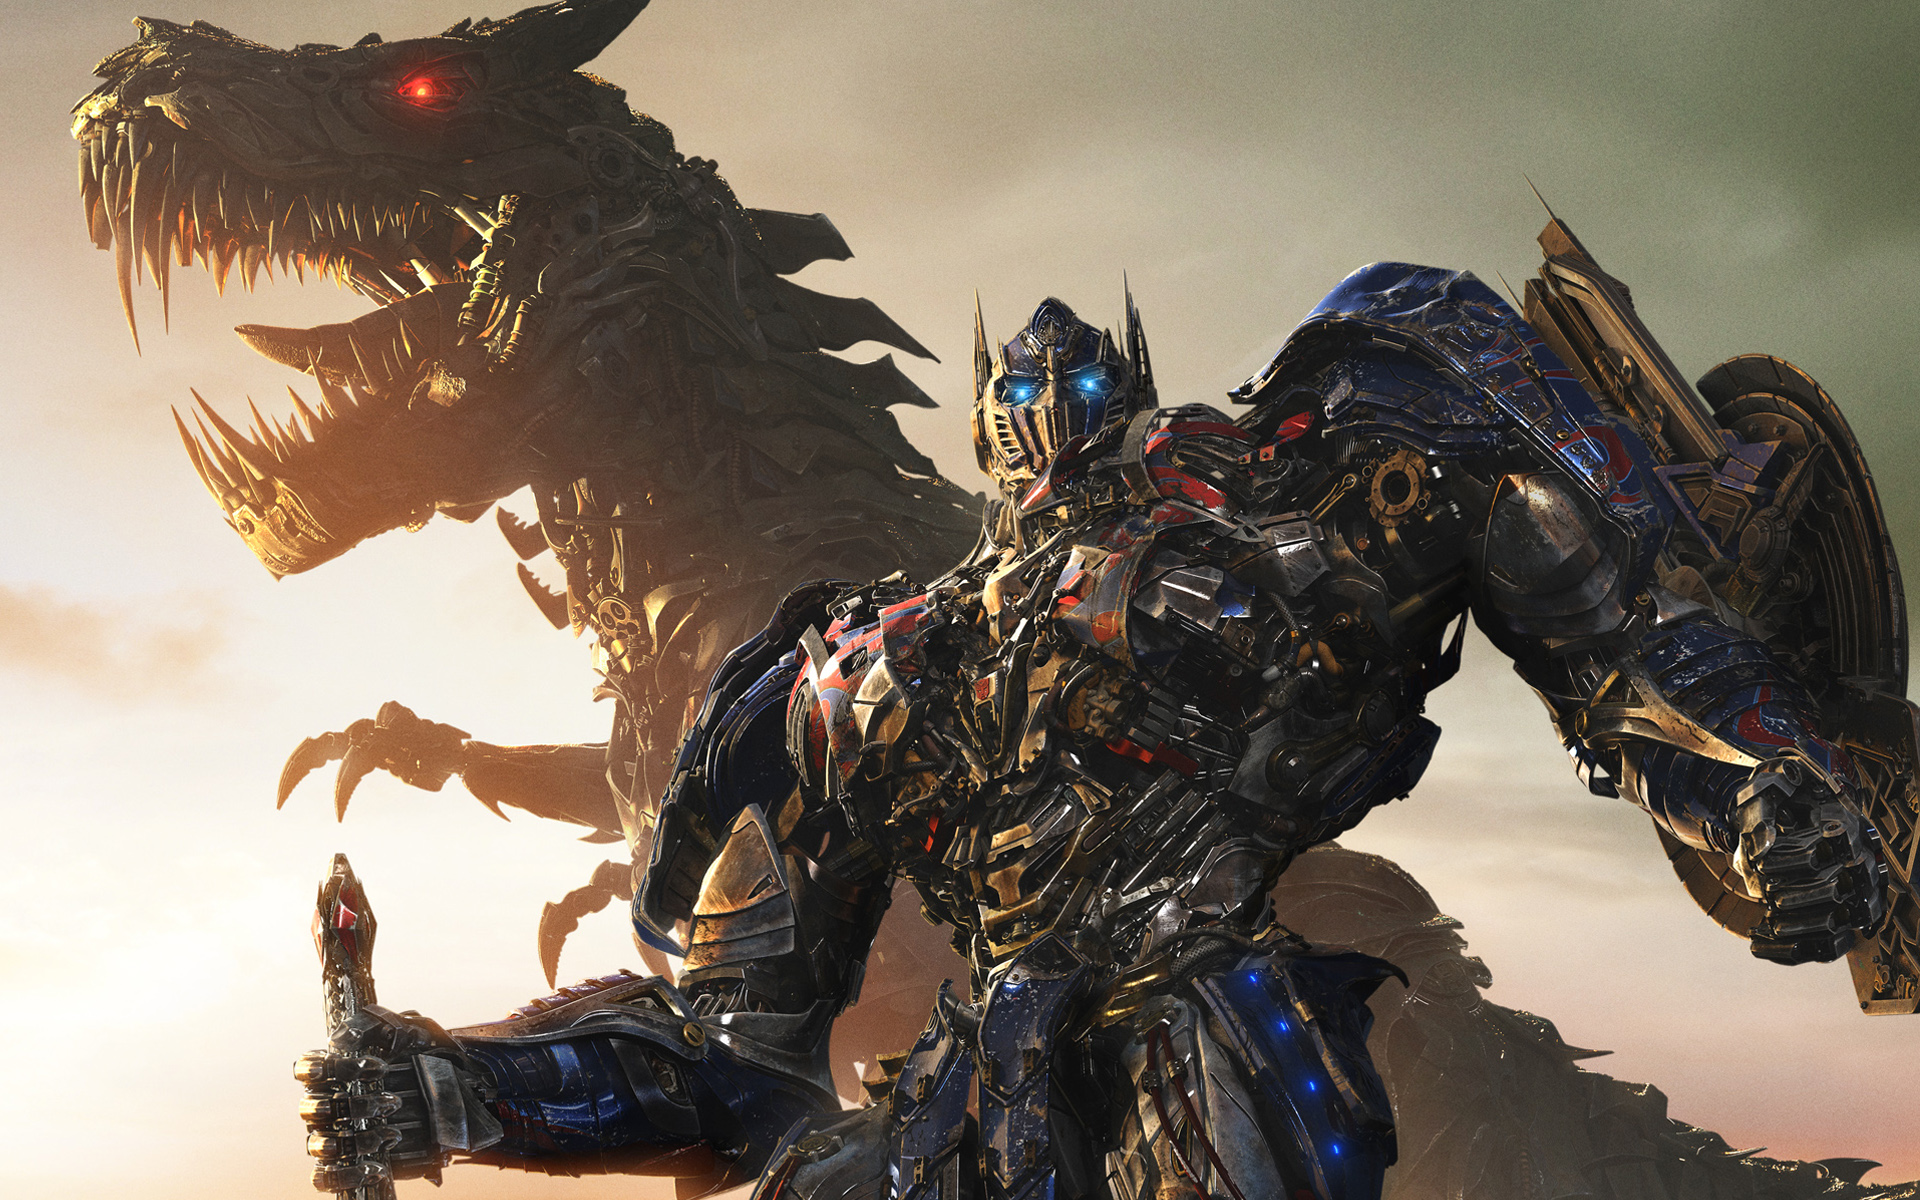 Transformers Age Of Extinction Hd Wallpaper Background Image